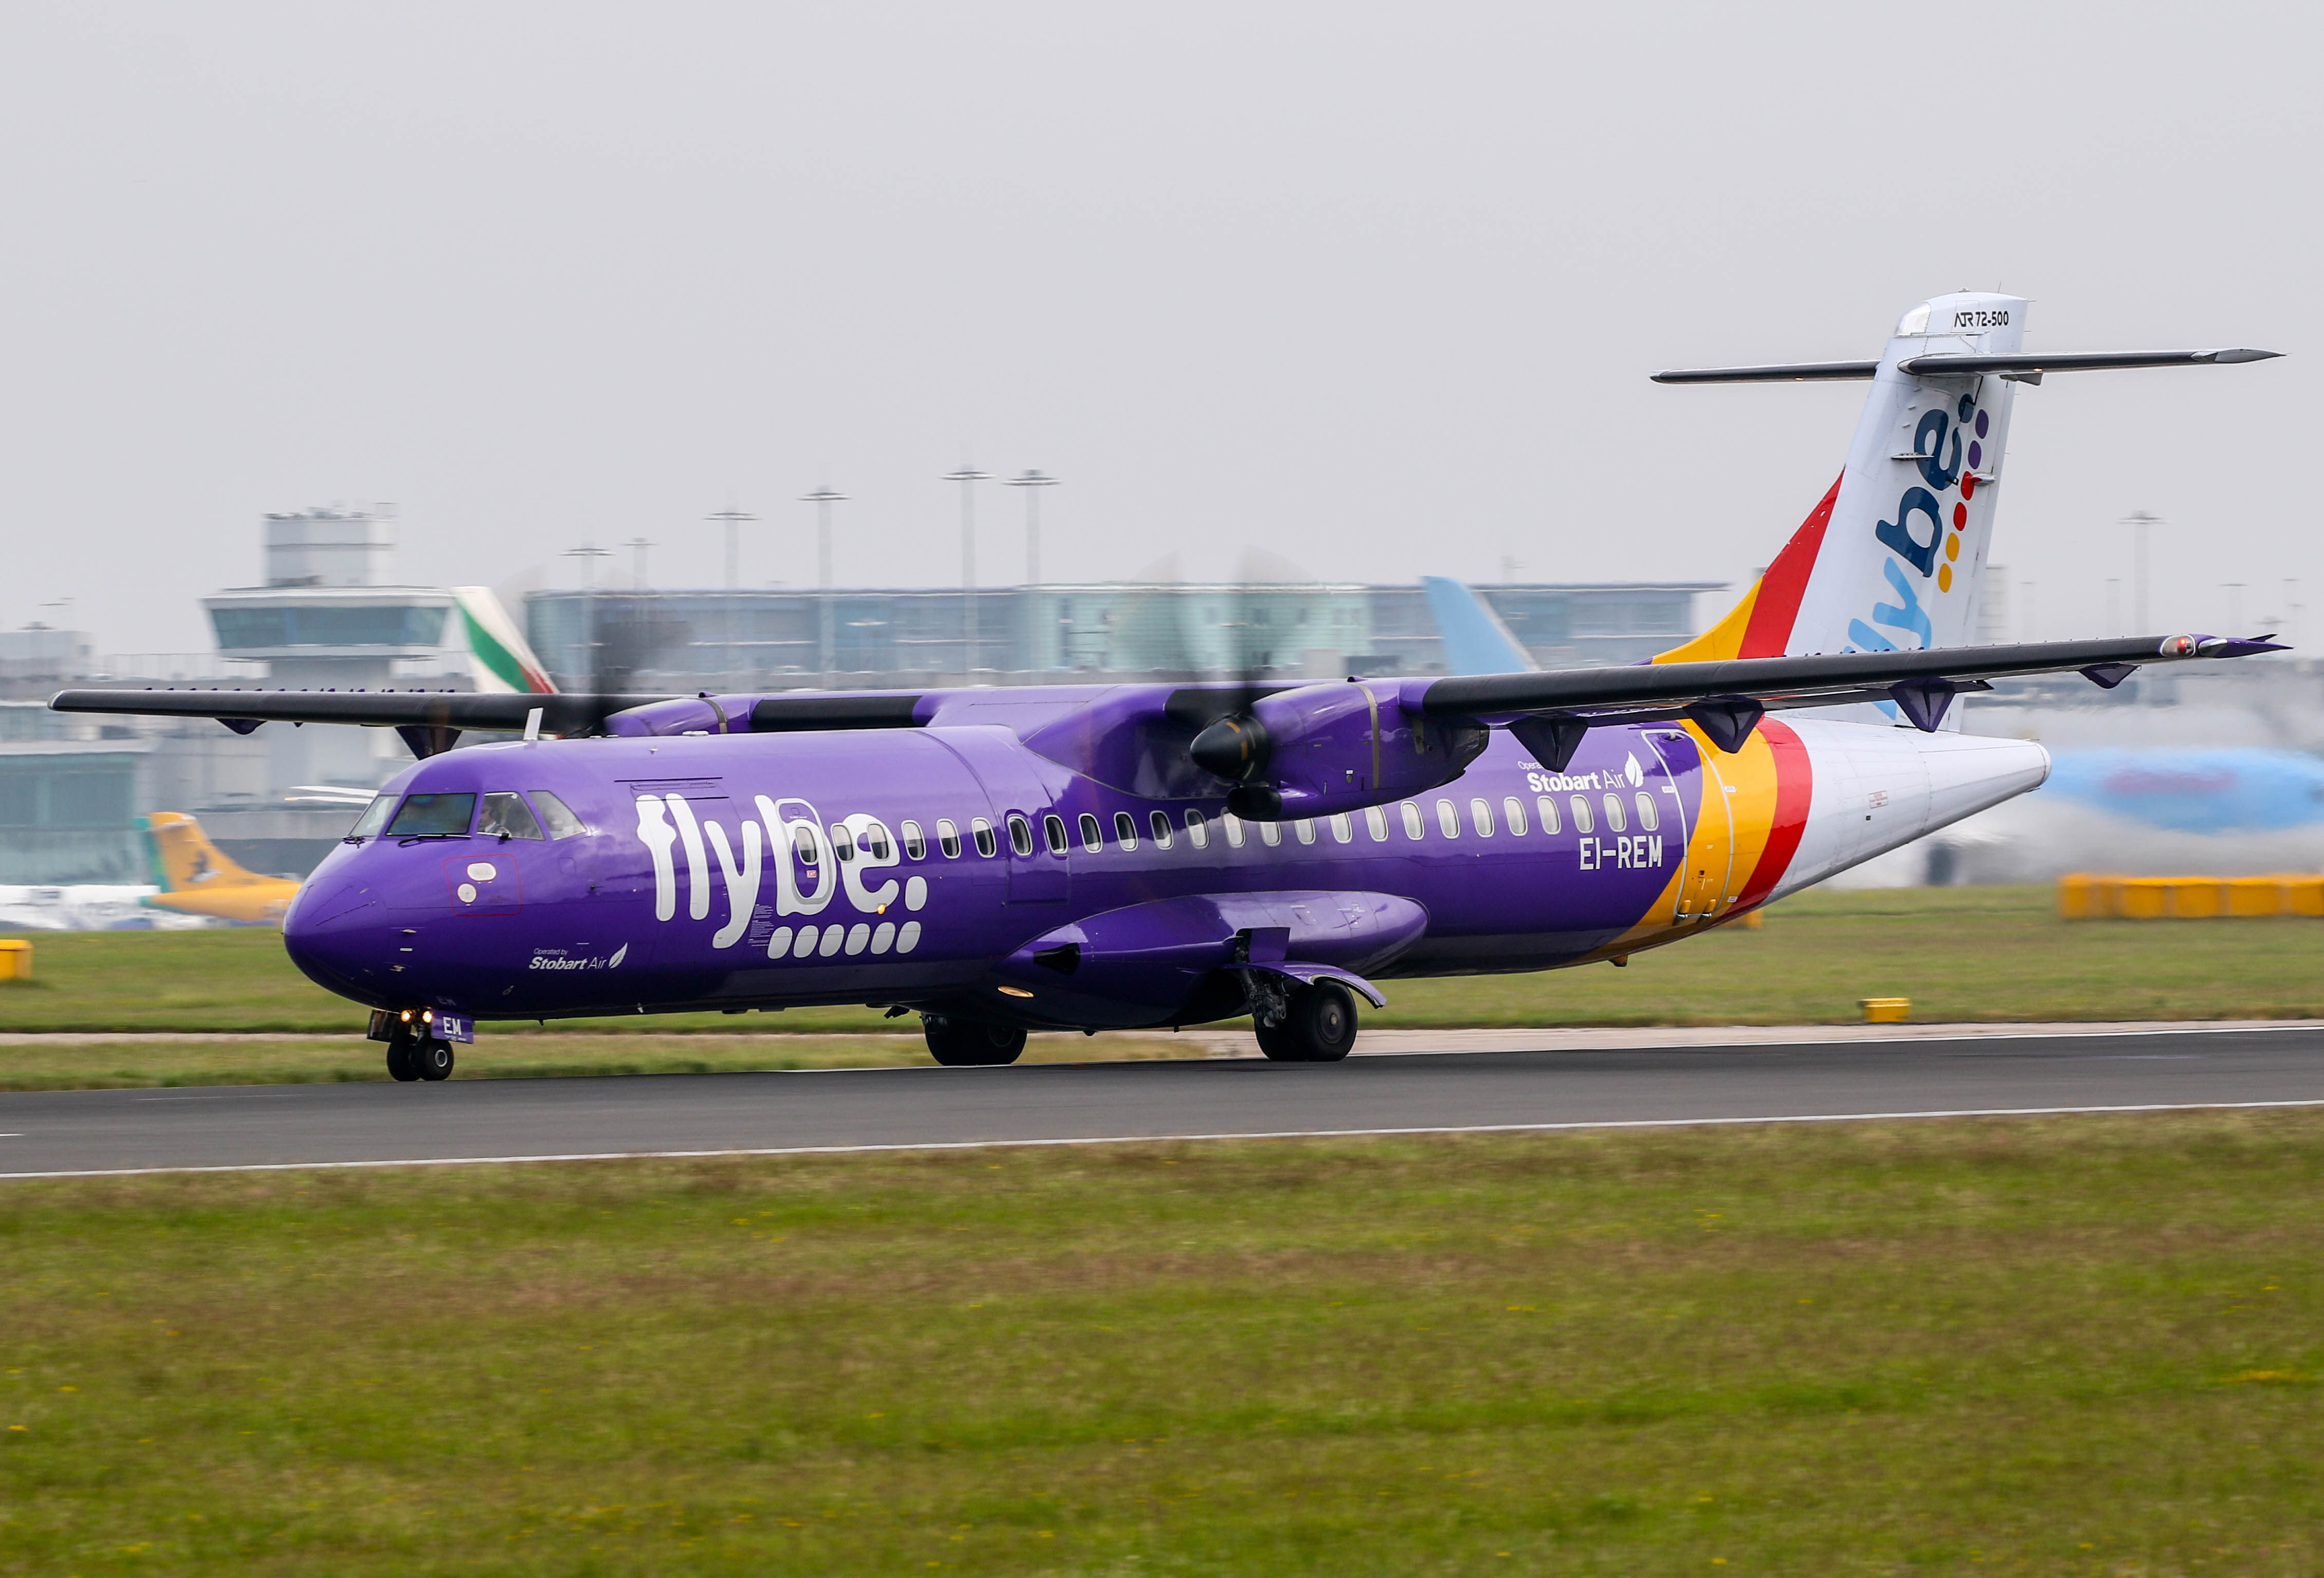 UPDATE 3-UK's Johnson says Flybe important for transport links amid rescue talks